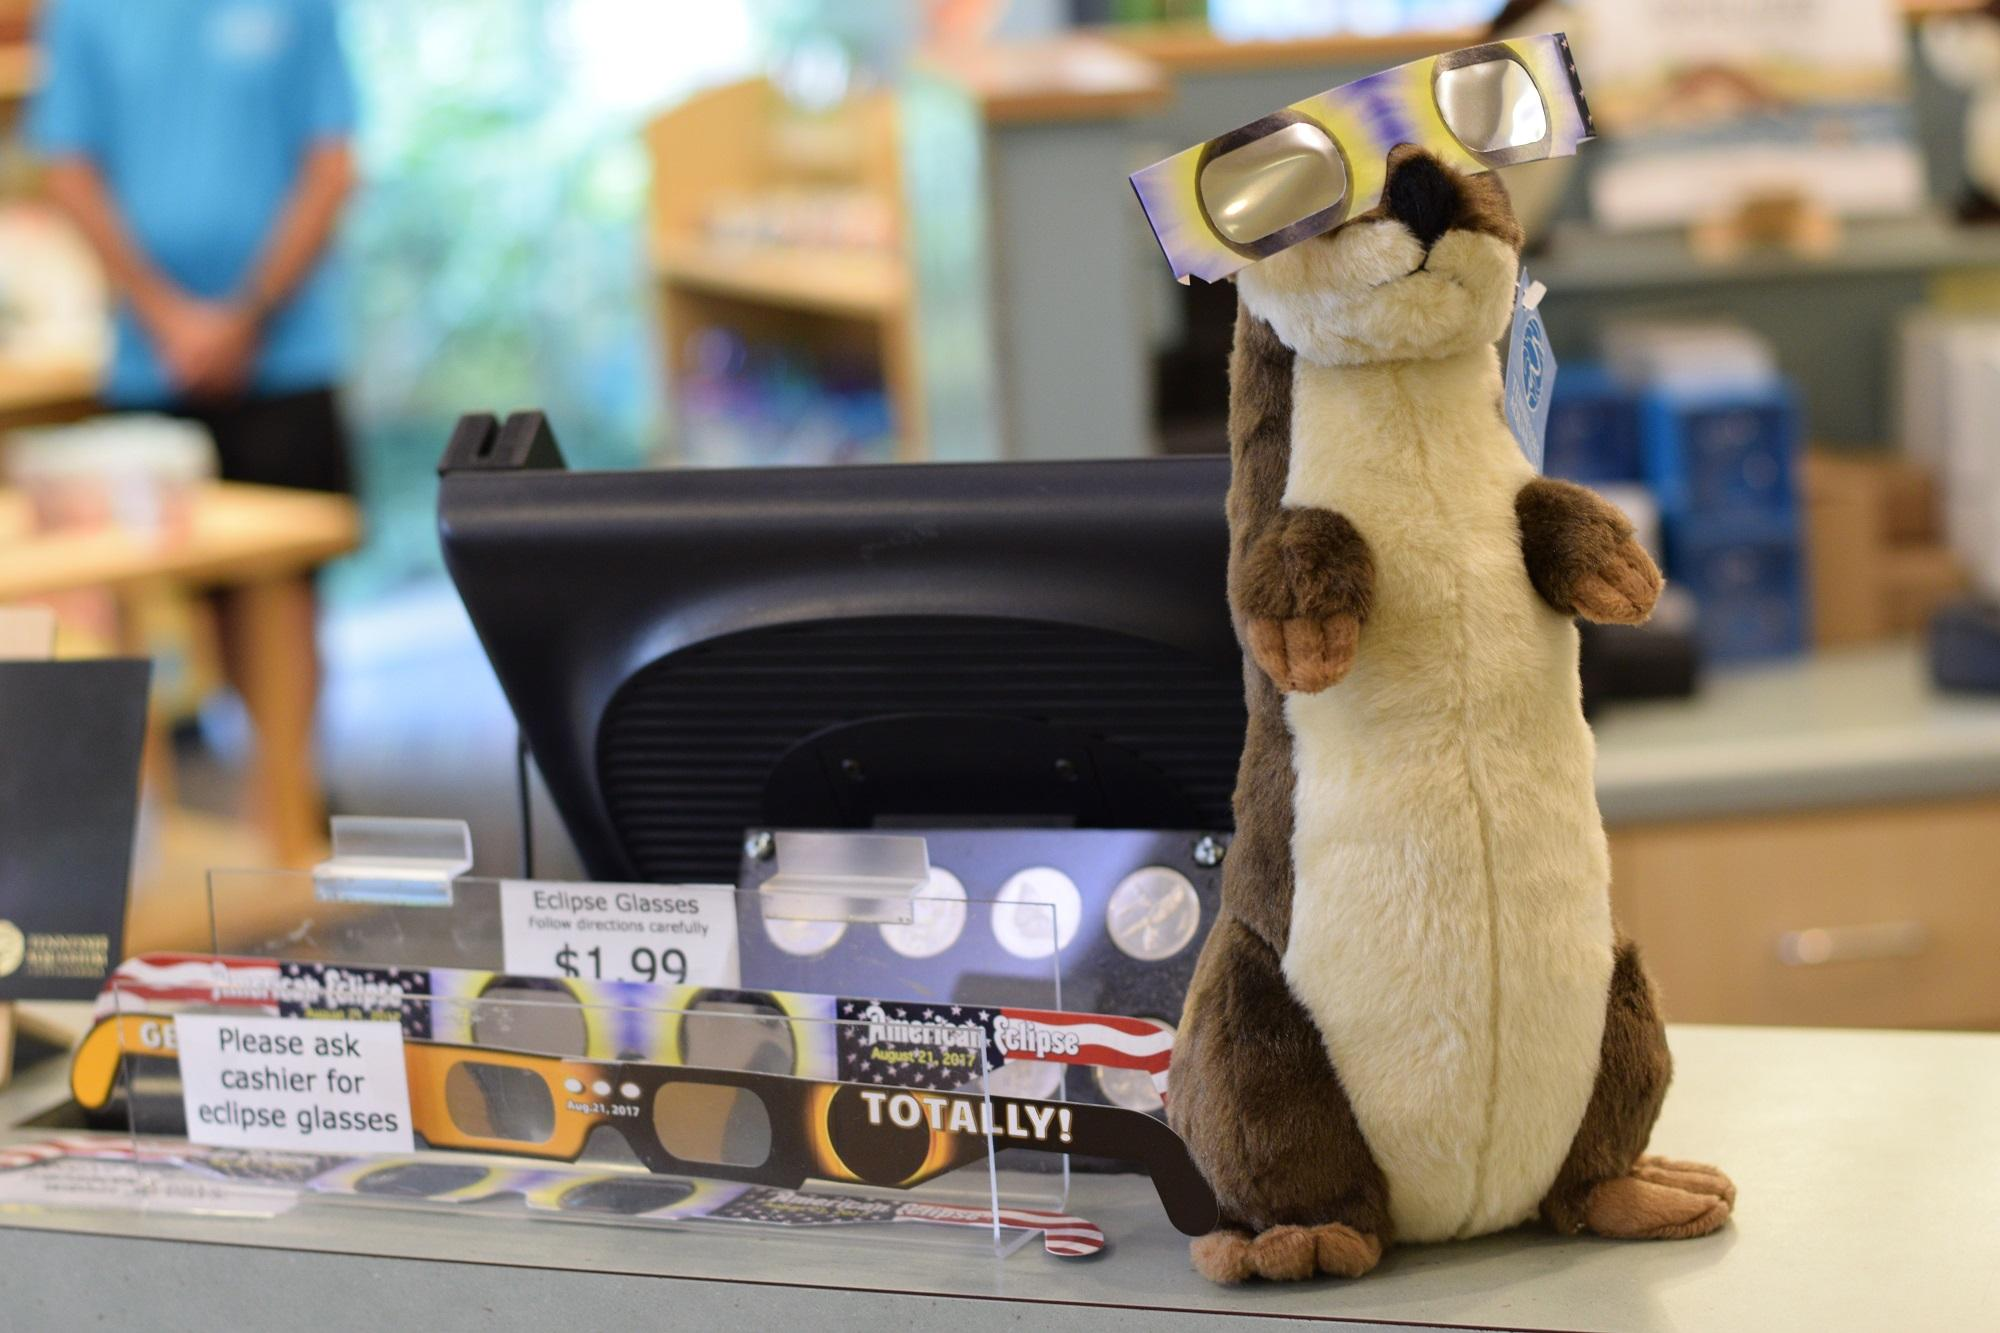 Eclipse glasses are available at the aquarium's gift shop prior to the astronomical event on August 21. (Image: Tennessee Aquarium)